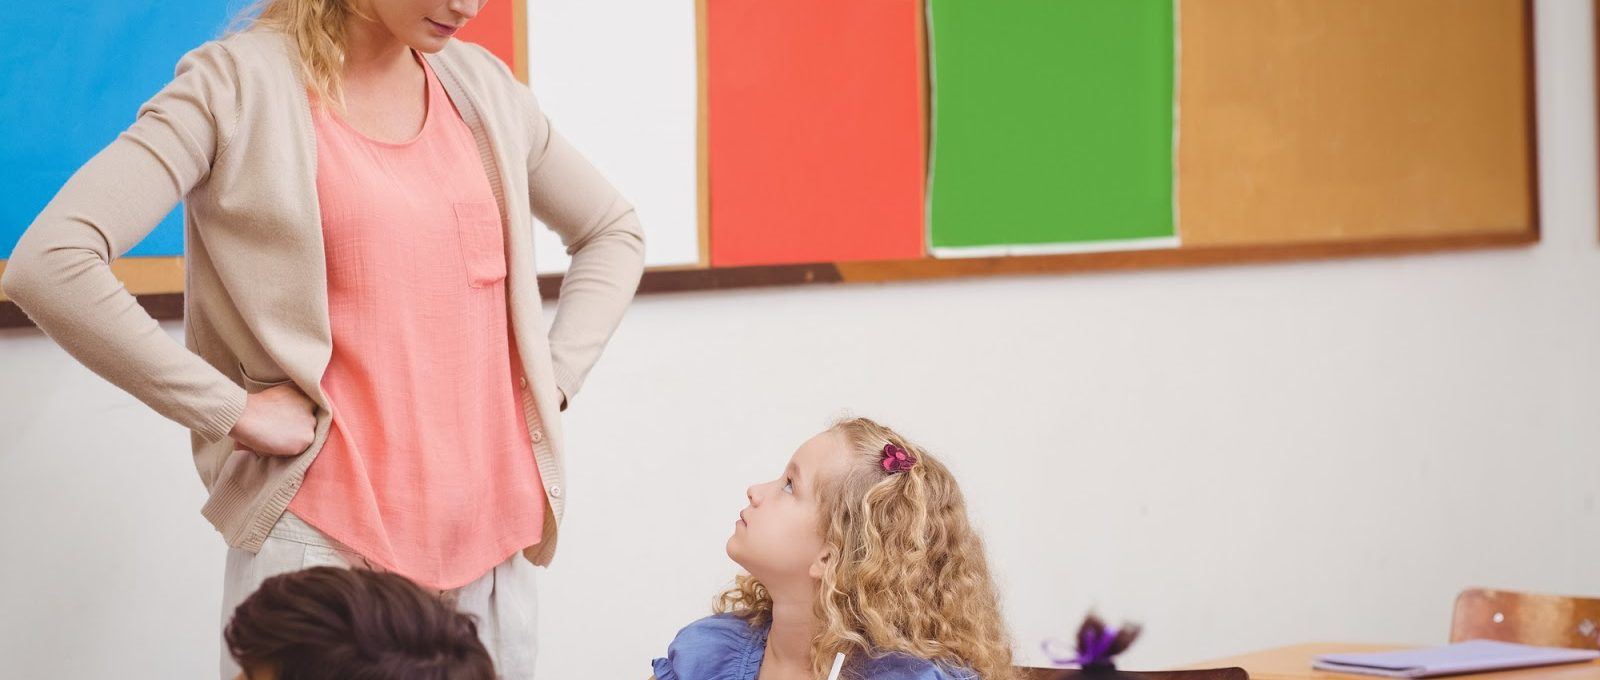 Classroom management strategies: how to handle disruptive